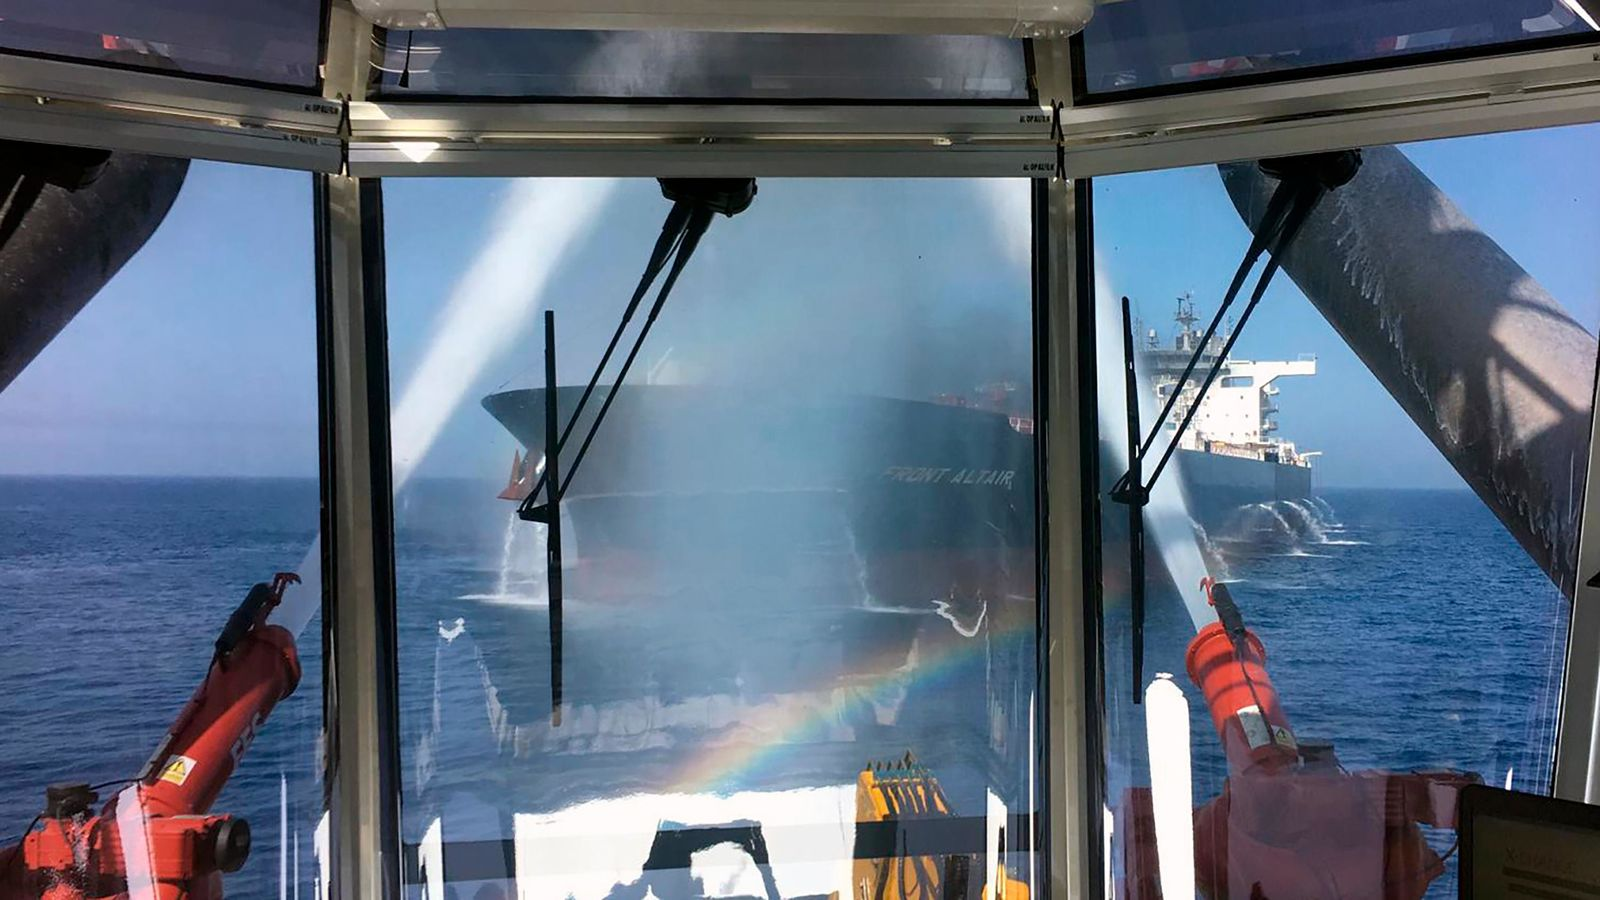 In this photo dated Thursday June 13, 2019, made available by the Norwegian shipowner Frontline, showing the crude oil tanker Front Altair seen through glass observation window as water cannon operate during the firefighting of the fire onboard the Norwegian ship in the Gulf of Oman.  The U.S. Navy rushed to assist the stricken vessels in the Gulf of Oman, off the coast of Iran, as two oil tankers came under suspected attack amid heightened tension between Iran and the U.S. (Frontline via AP)